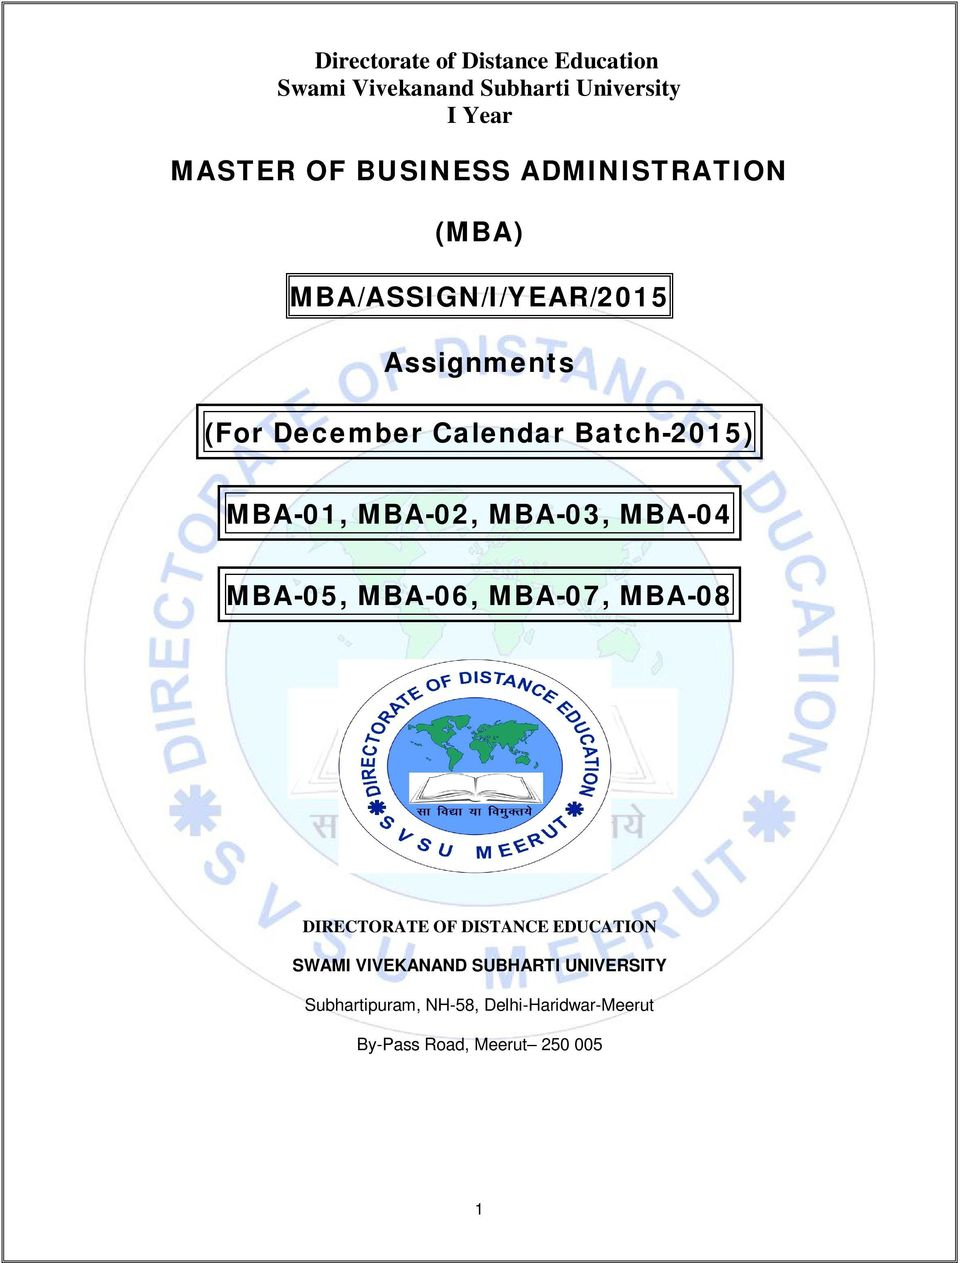 Master of business administration mba mbaassigniyear2015 mba 07 mba 08 directorate of distance education swami vivekanand subharti malvernweather Choice Image